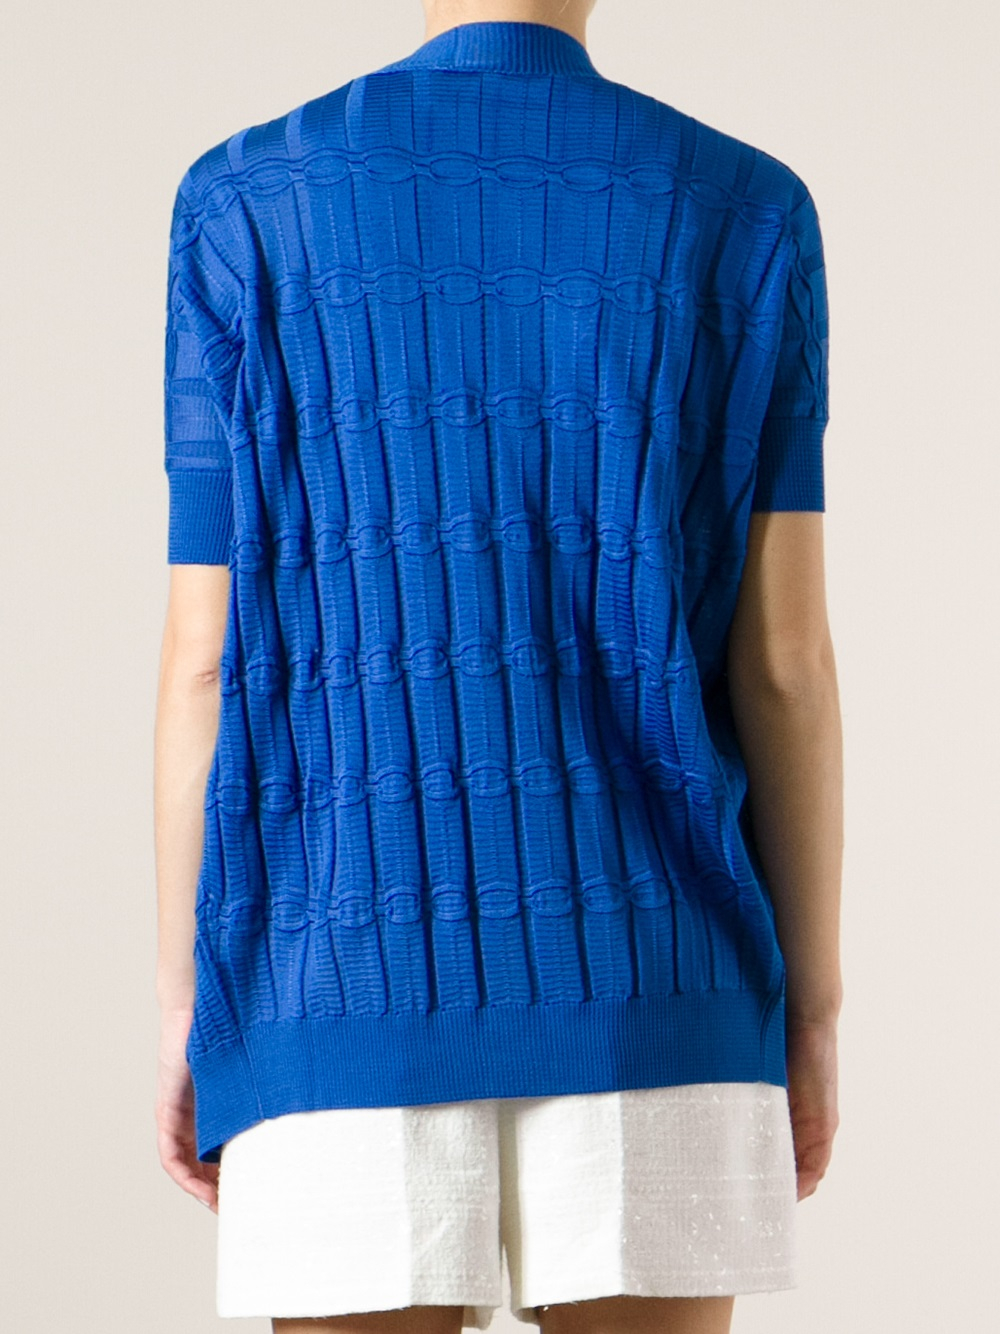 M missoni Short Sleeve Cardigan in Blue | Lyst